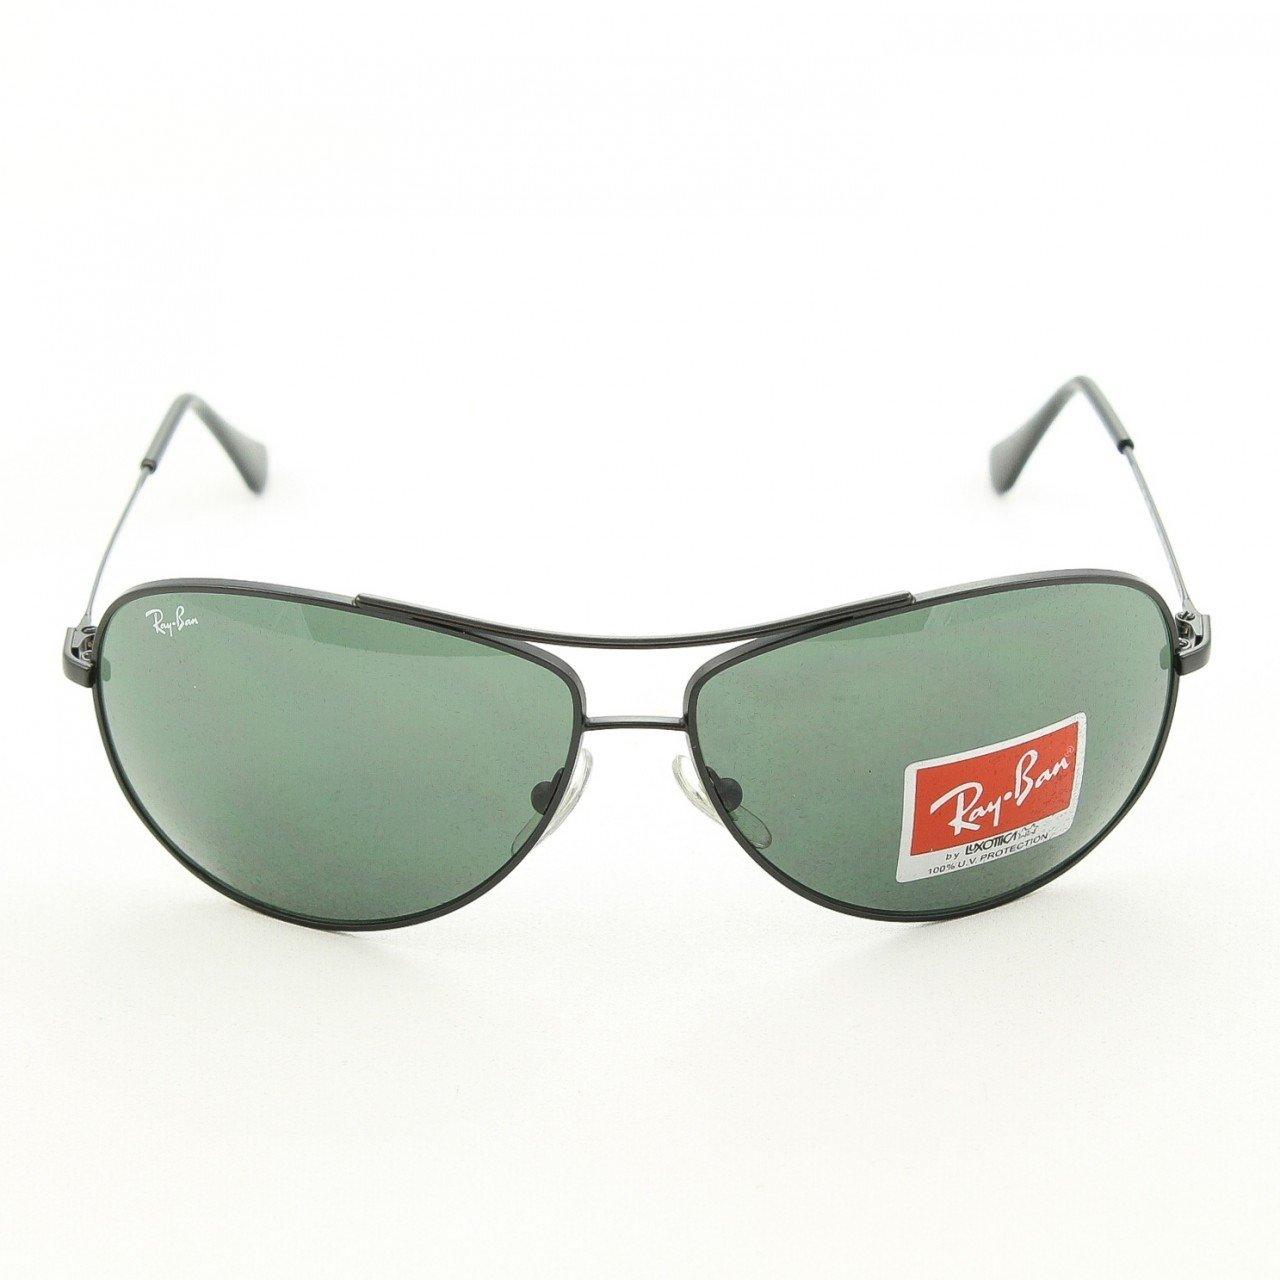 Ray Ban RB 3293 size 63 Aviator Sunglasses Col 006/71 Matte Black 100% Auth&New